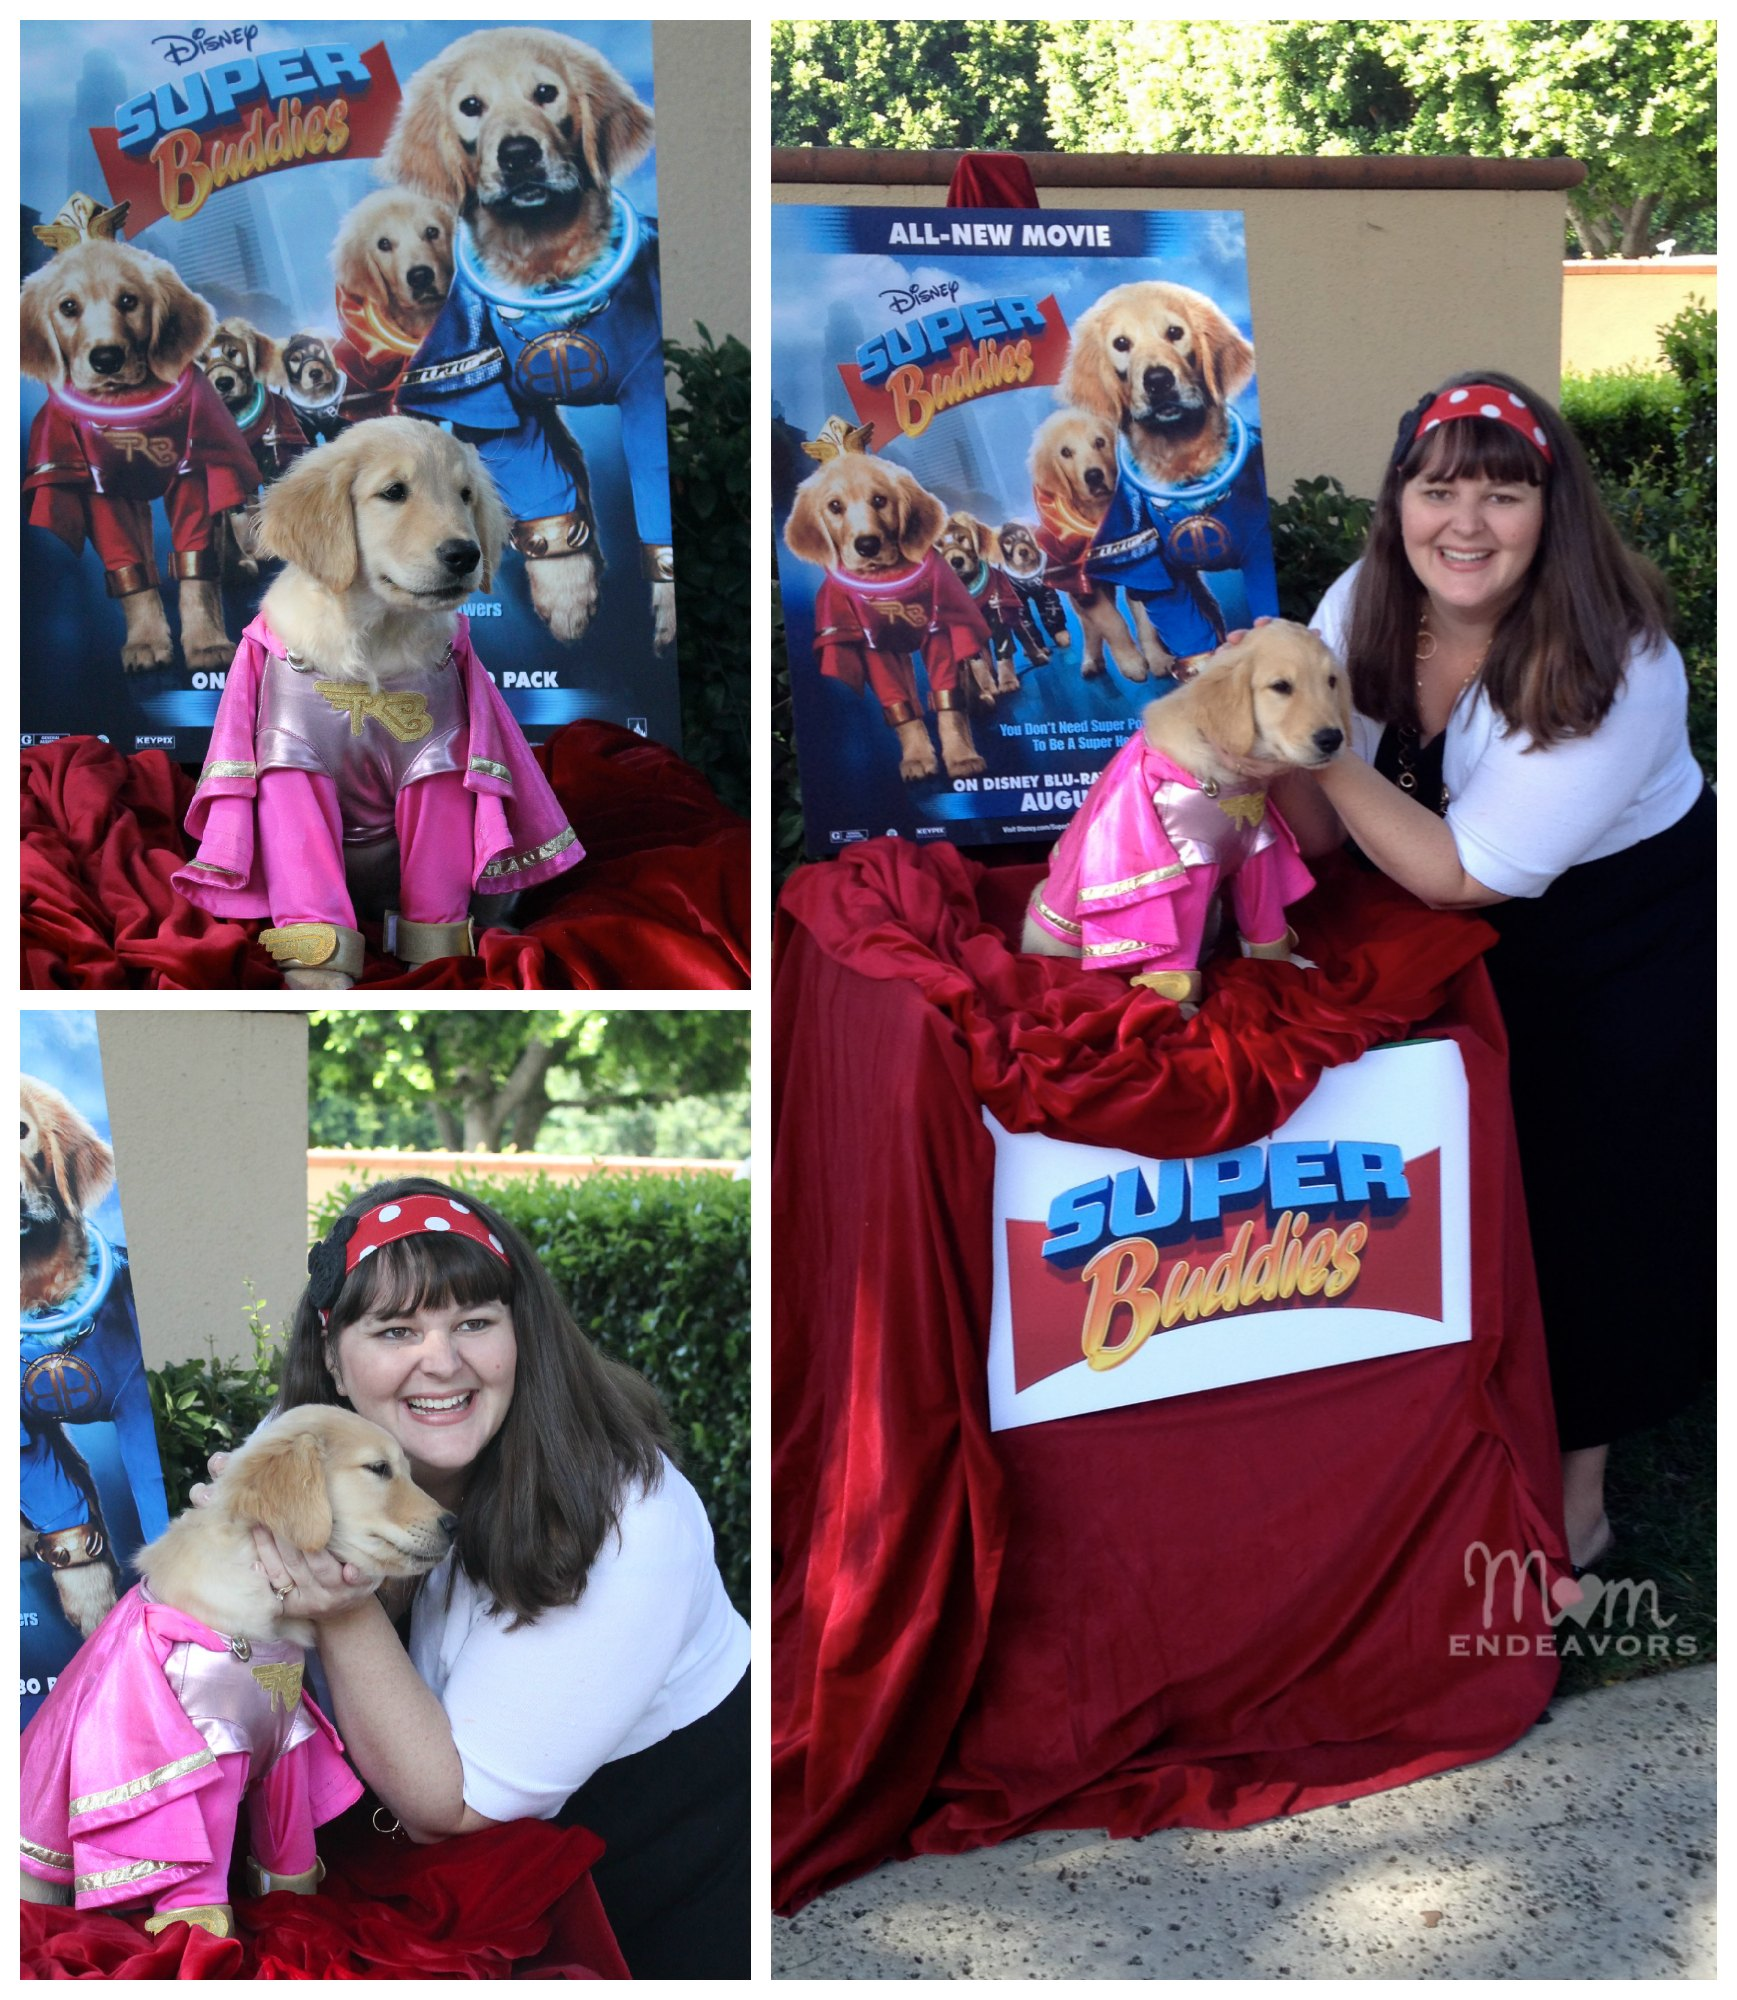 Meeting Disney's Super Buddies